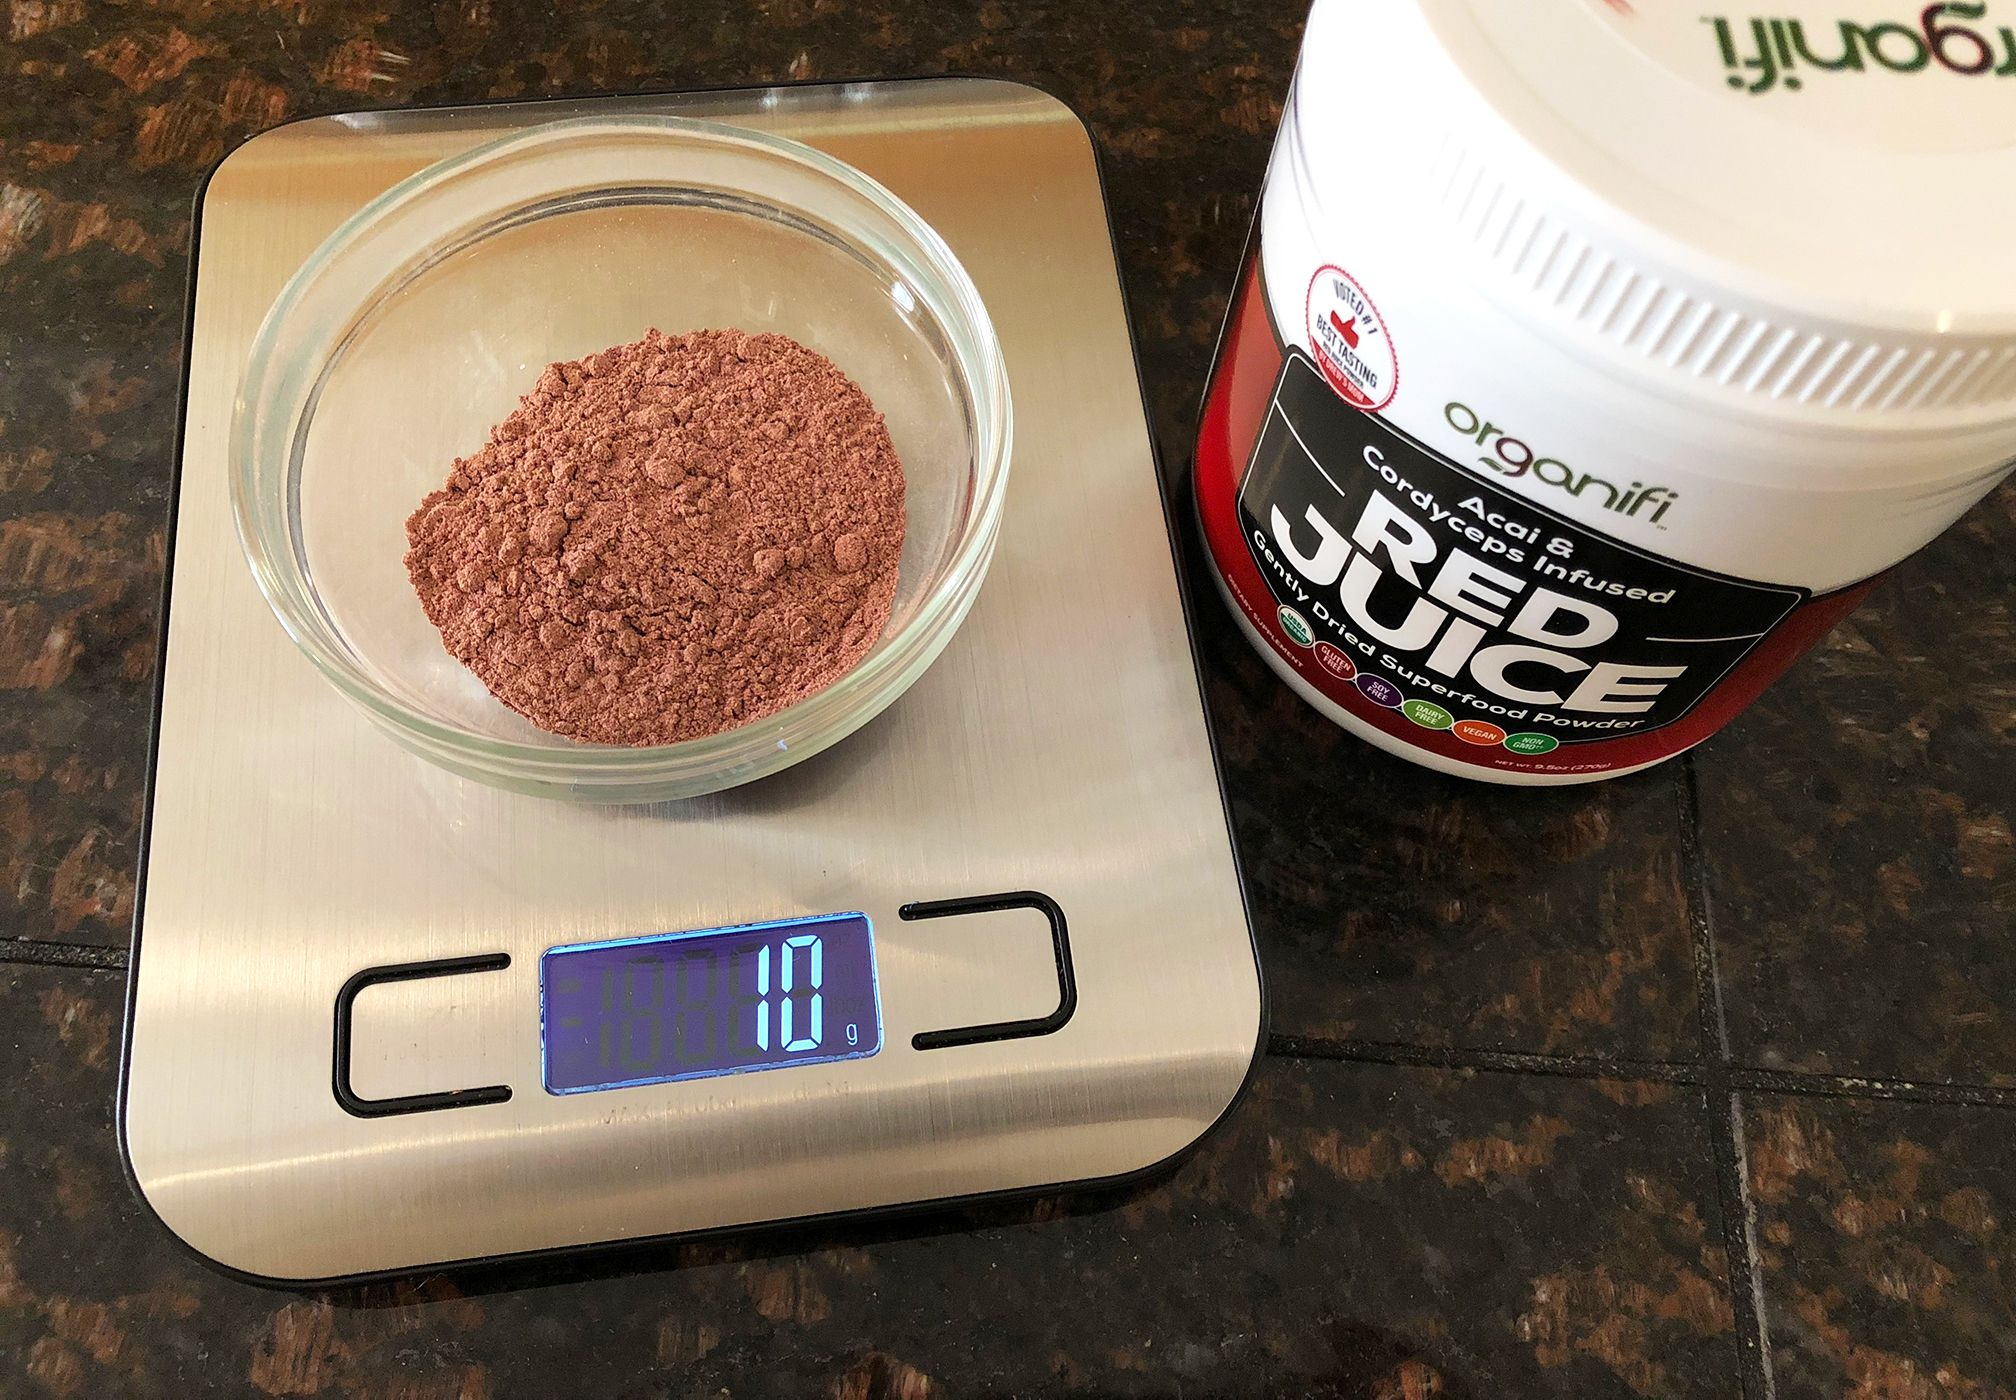 A Scoop of Red Juice Weighs Ten Grams